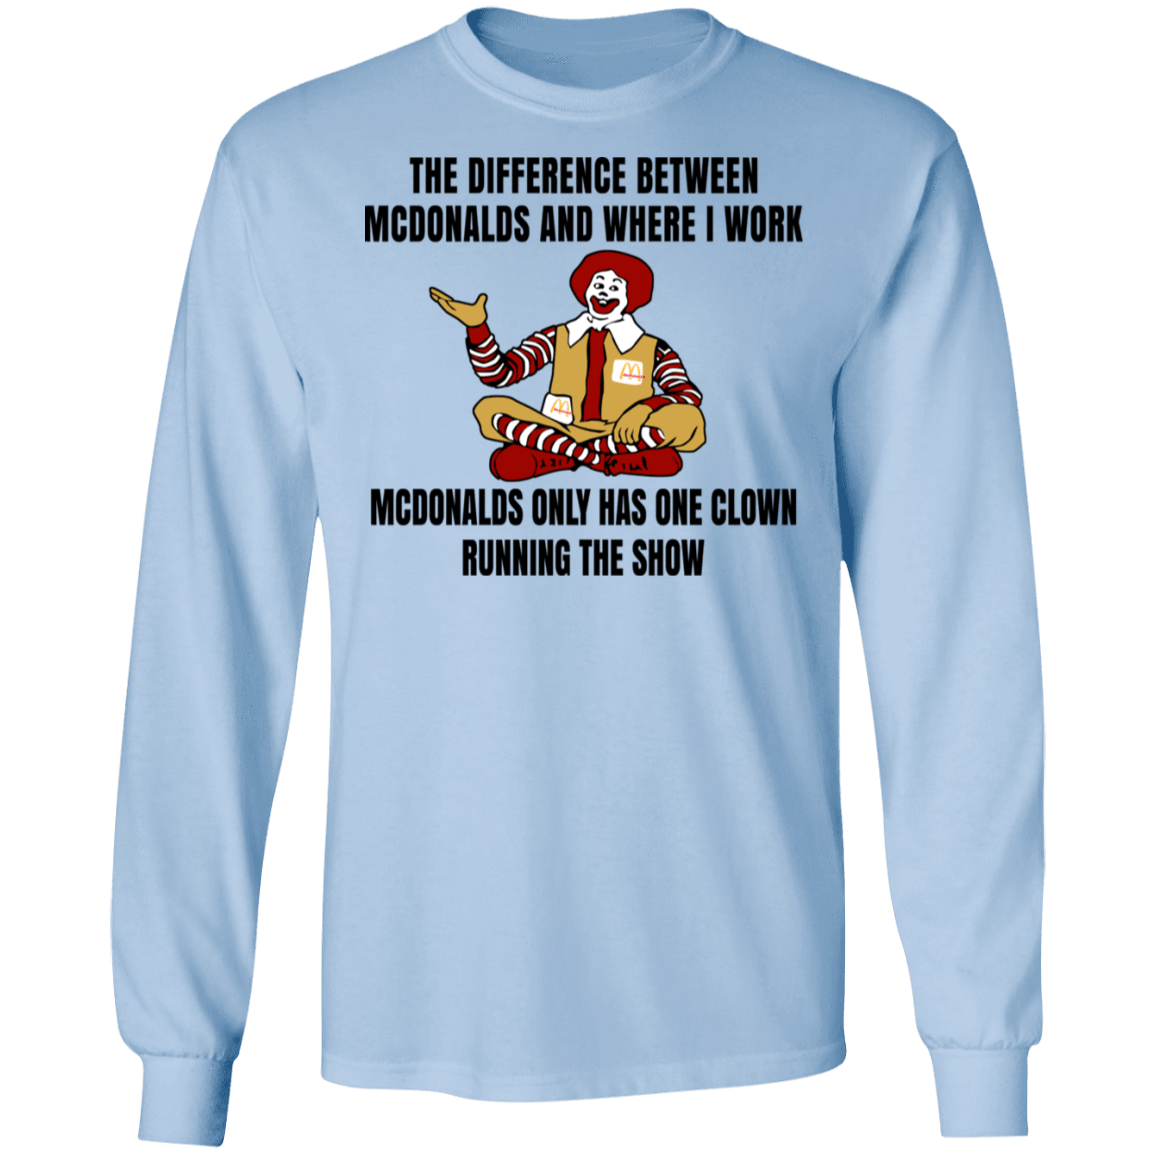 The Difference Between McDonalds And Where I Work McDonalds Only Has One Clown Running The Show T-Shirts, Hoodies, Tank 30-2110-79763380-10748 - Tee Ript